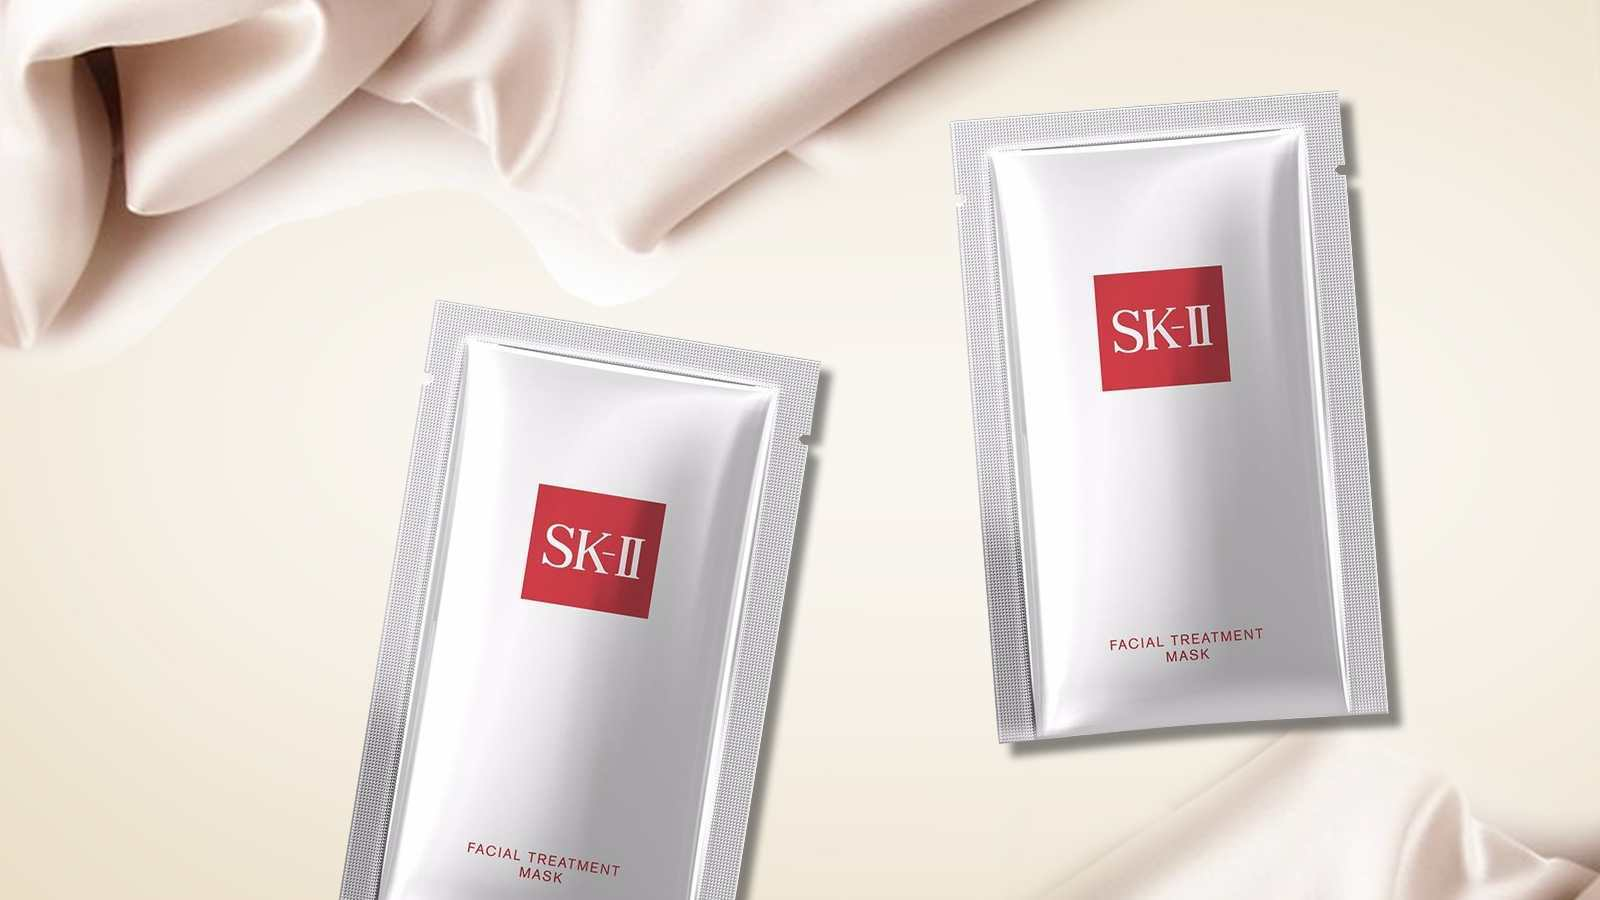 Facial Treatment Mask SK-II